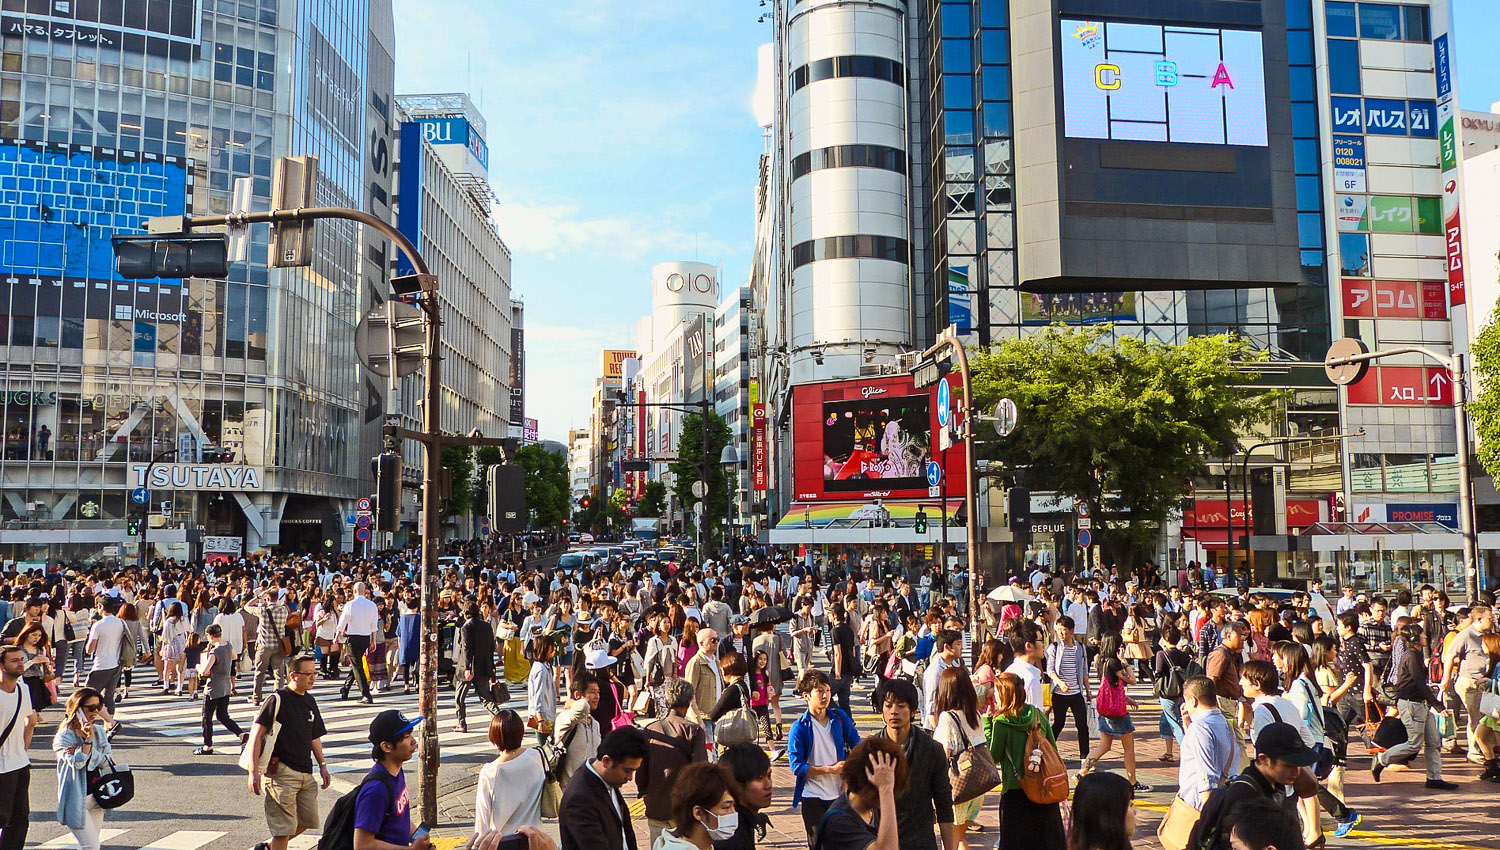 The Shibuya intersection is one of the world's busiest. Image:     Jason Goh